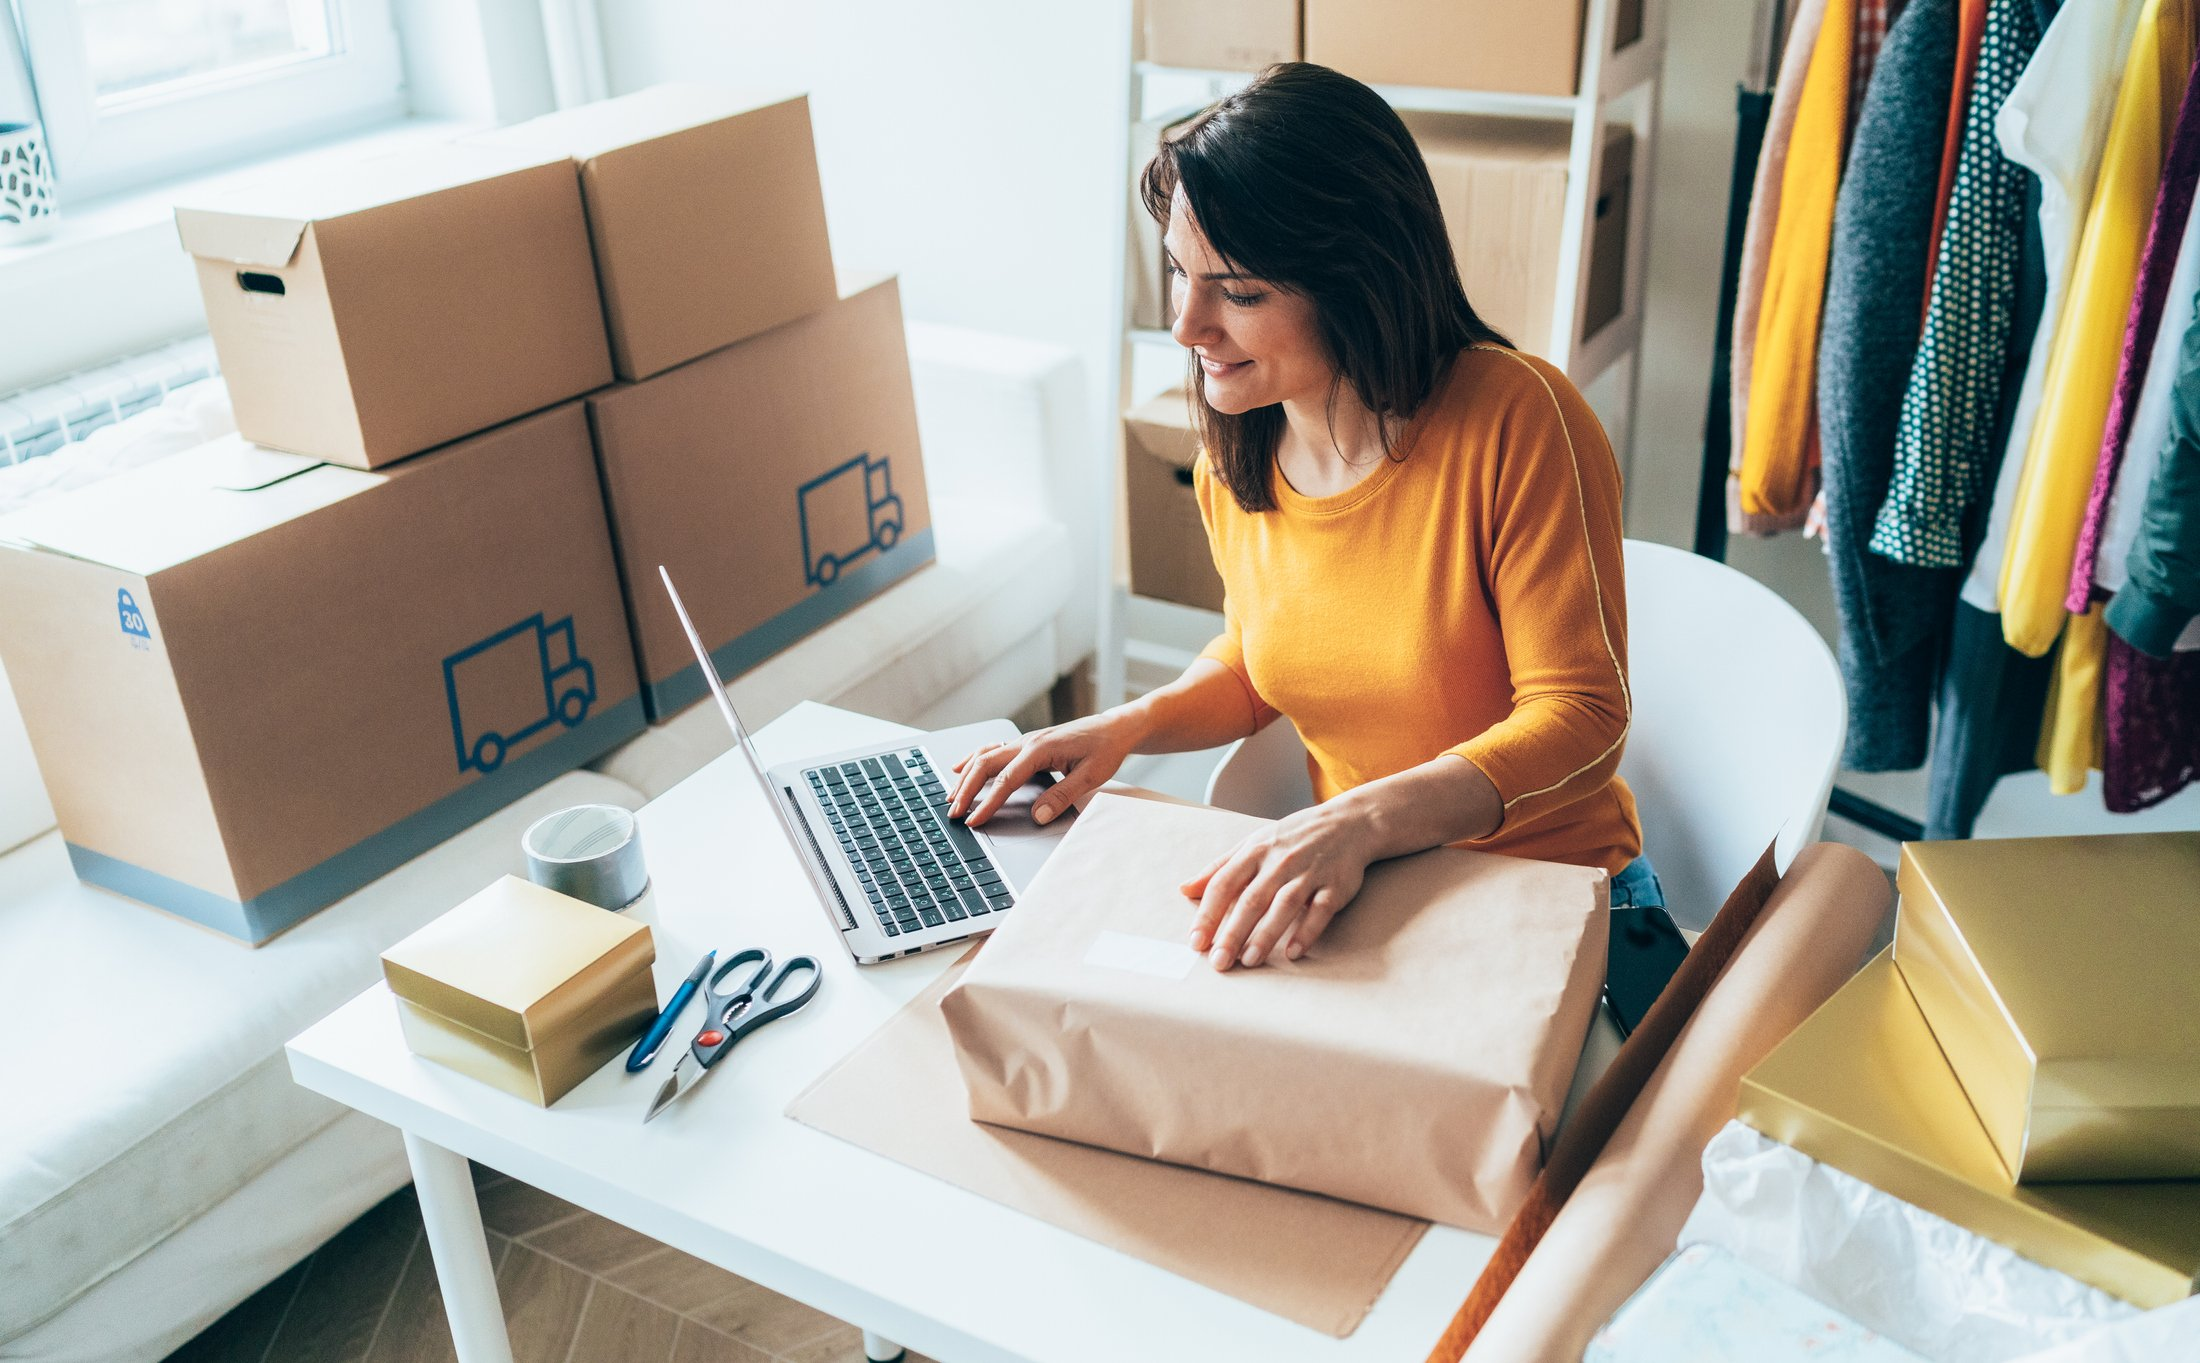 An entrepreneur sitting at a desk managing shipping, processing orders, and packing boxes.